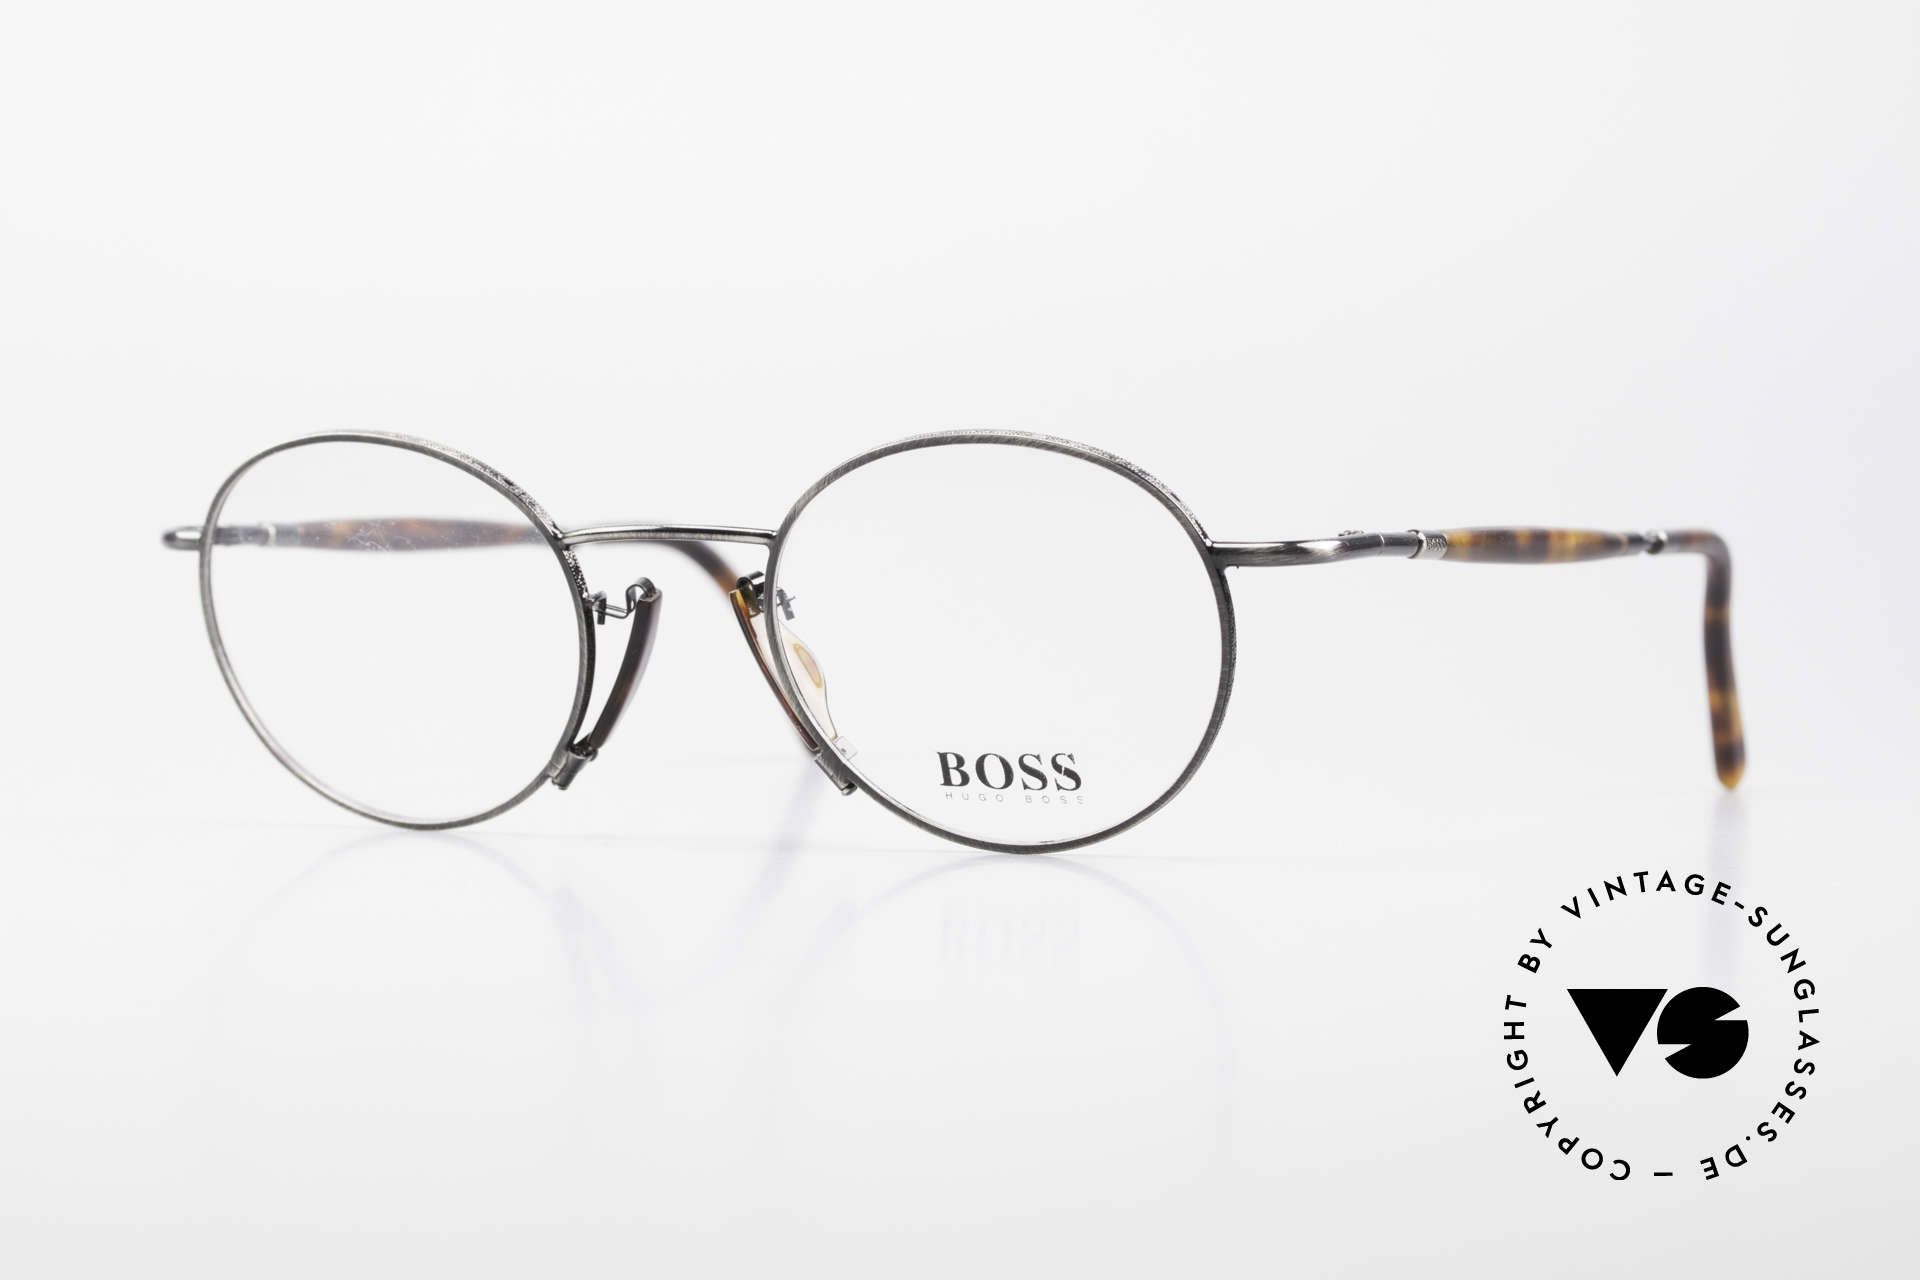 BOSS 4707 Round Panto Style Frame 90's, old BOSS 4707, 72, 48-21, 135 glasses from 1995, Made for Men